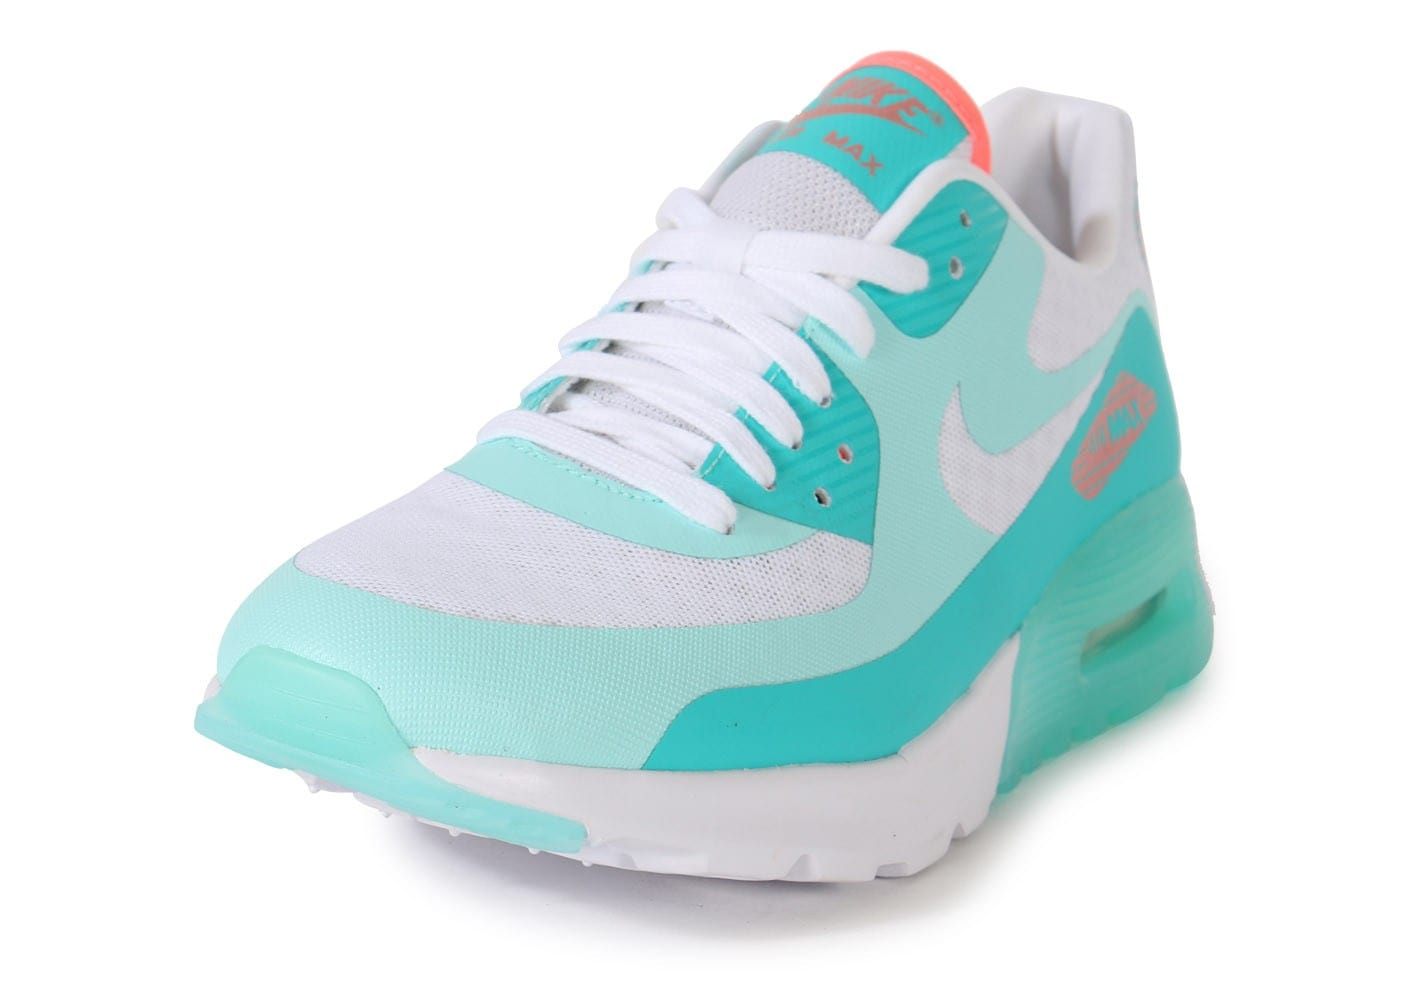 low cost d670f 2e122 nike - air max 90 ultra br - baskets - turquoise